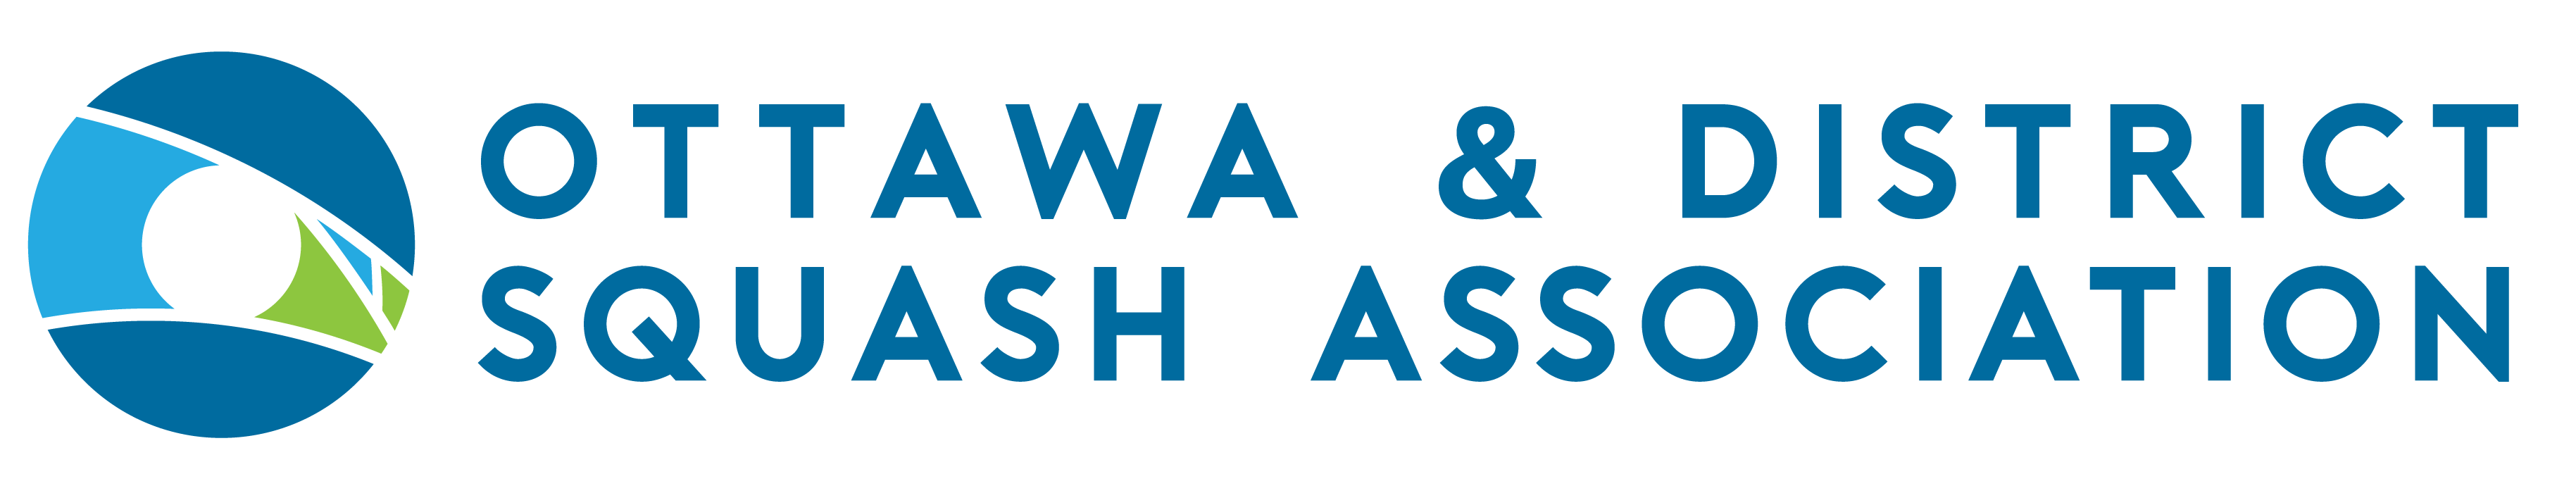 Ottawa & District Squash Association